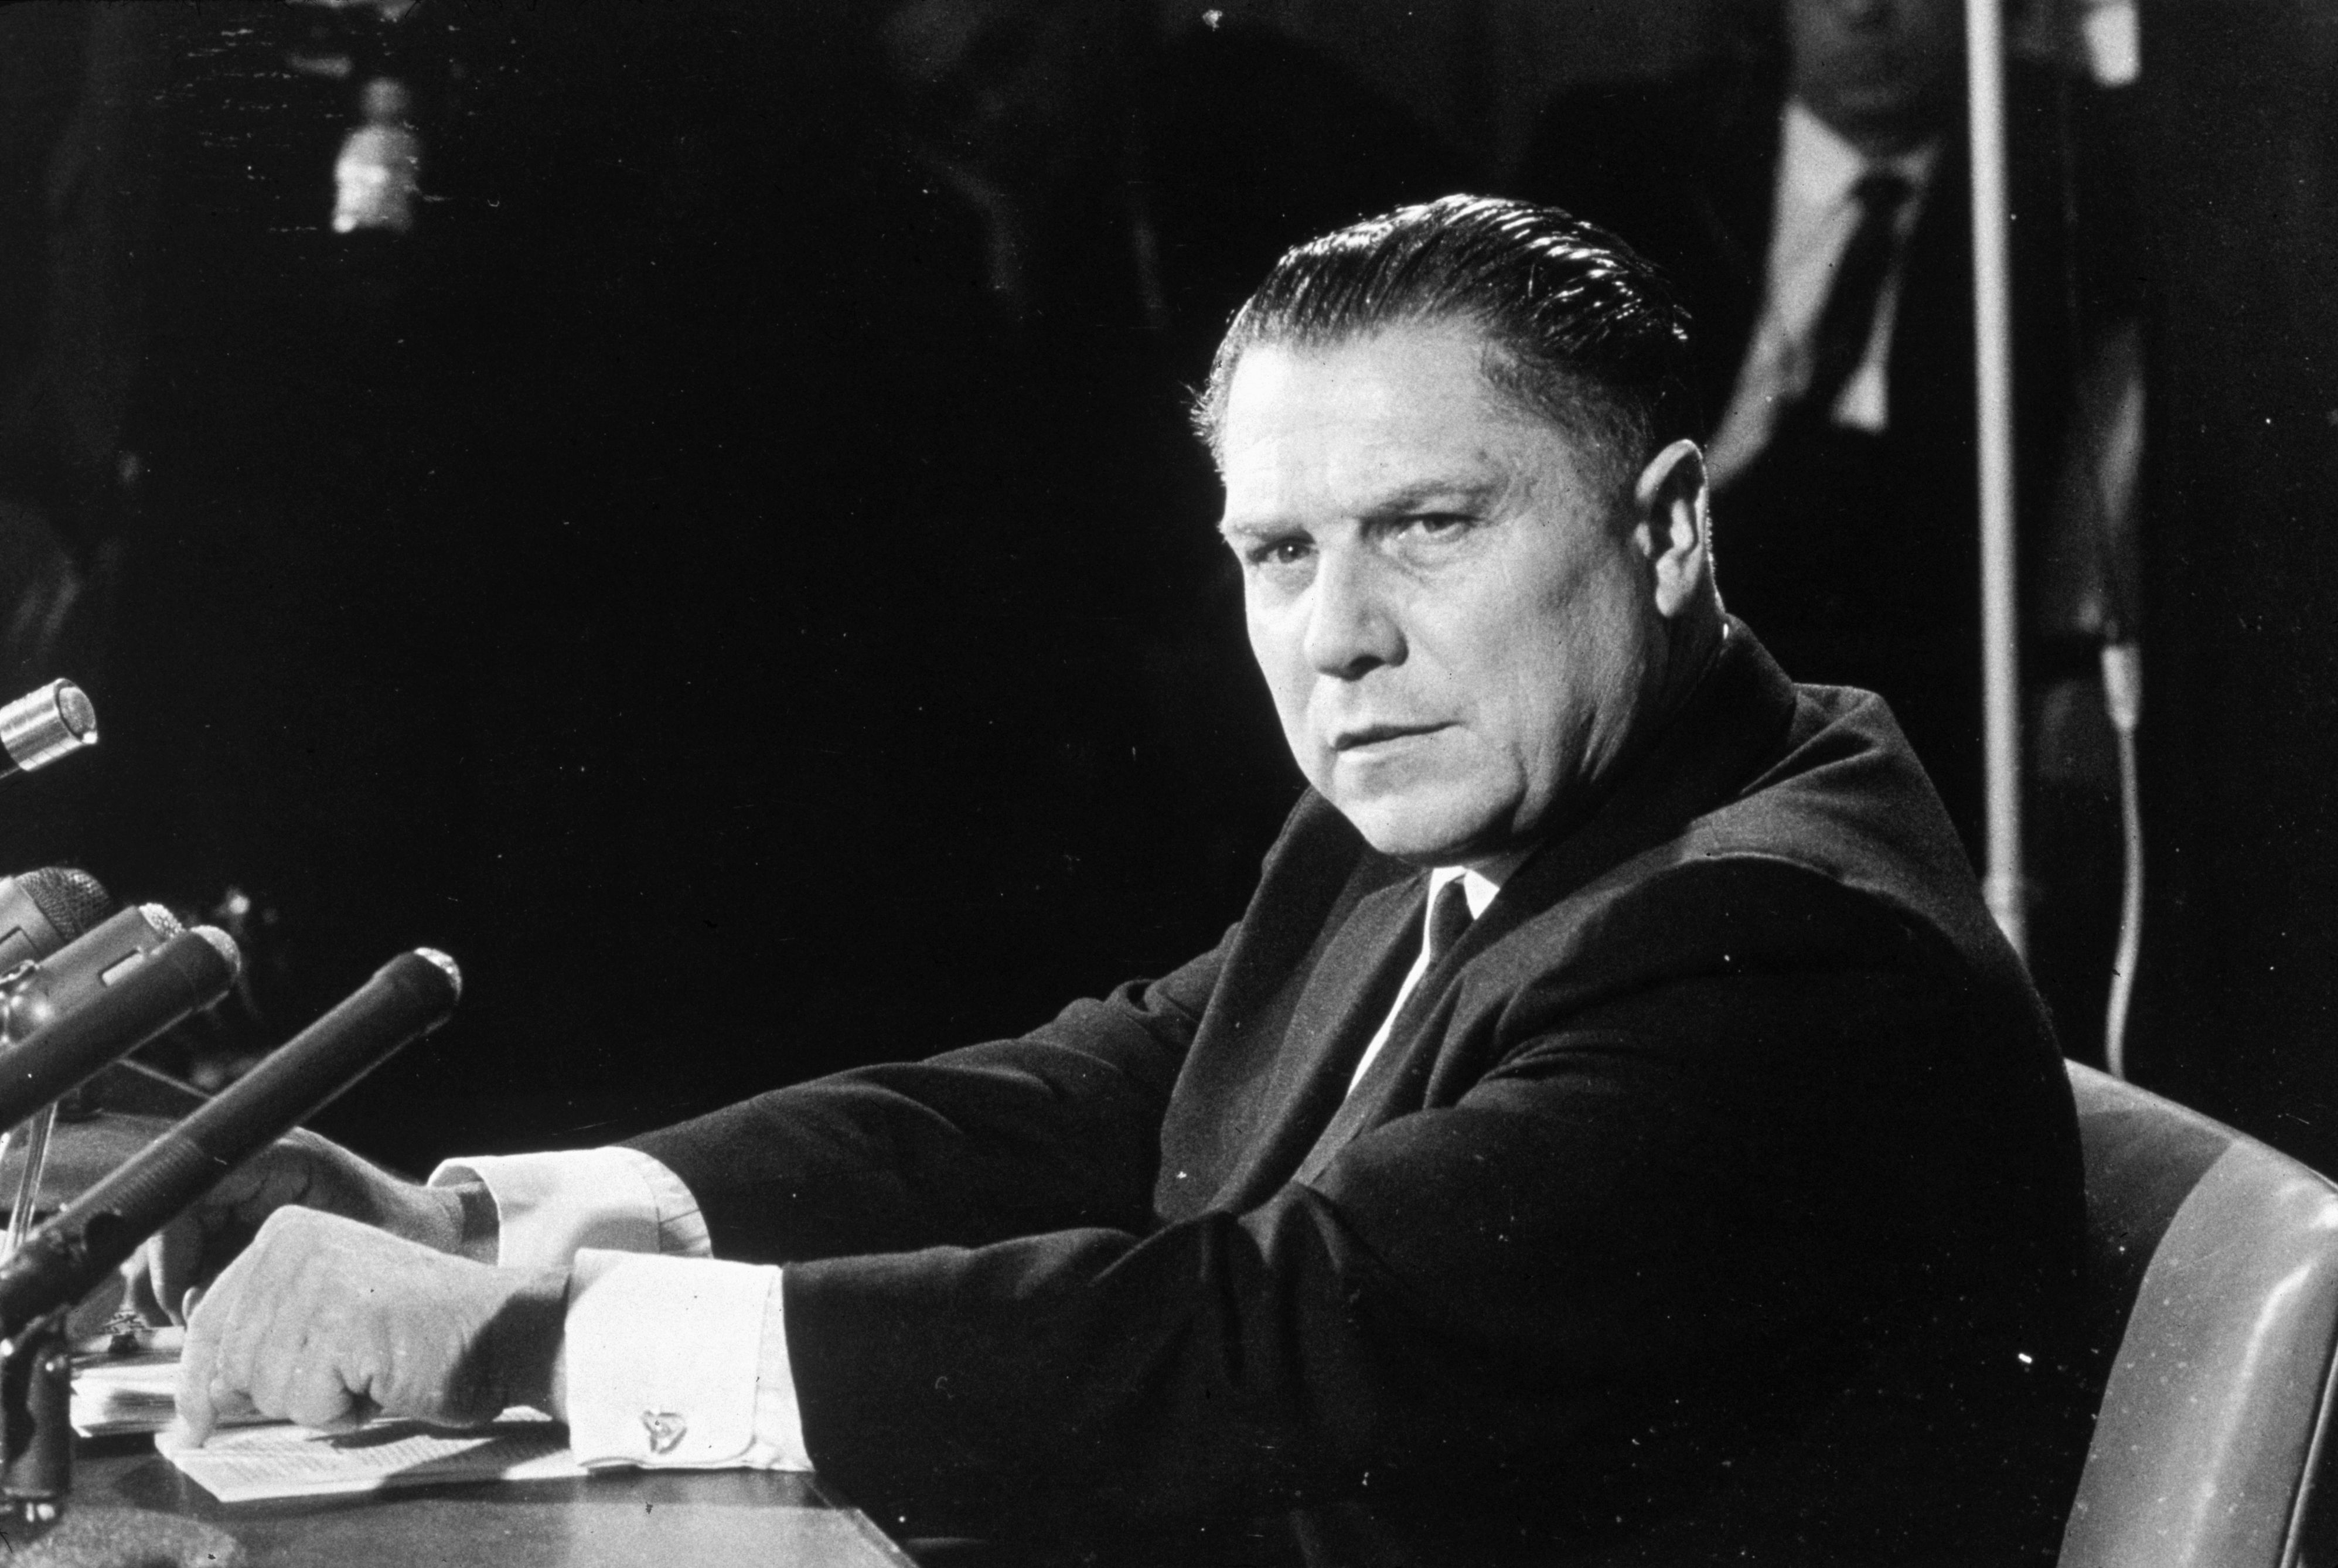 Remembering Jimmy Hoffa | Teamsters Canada